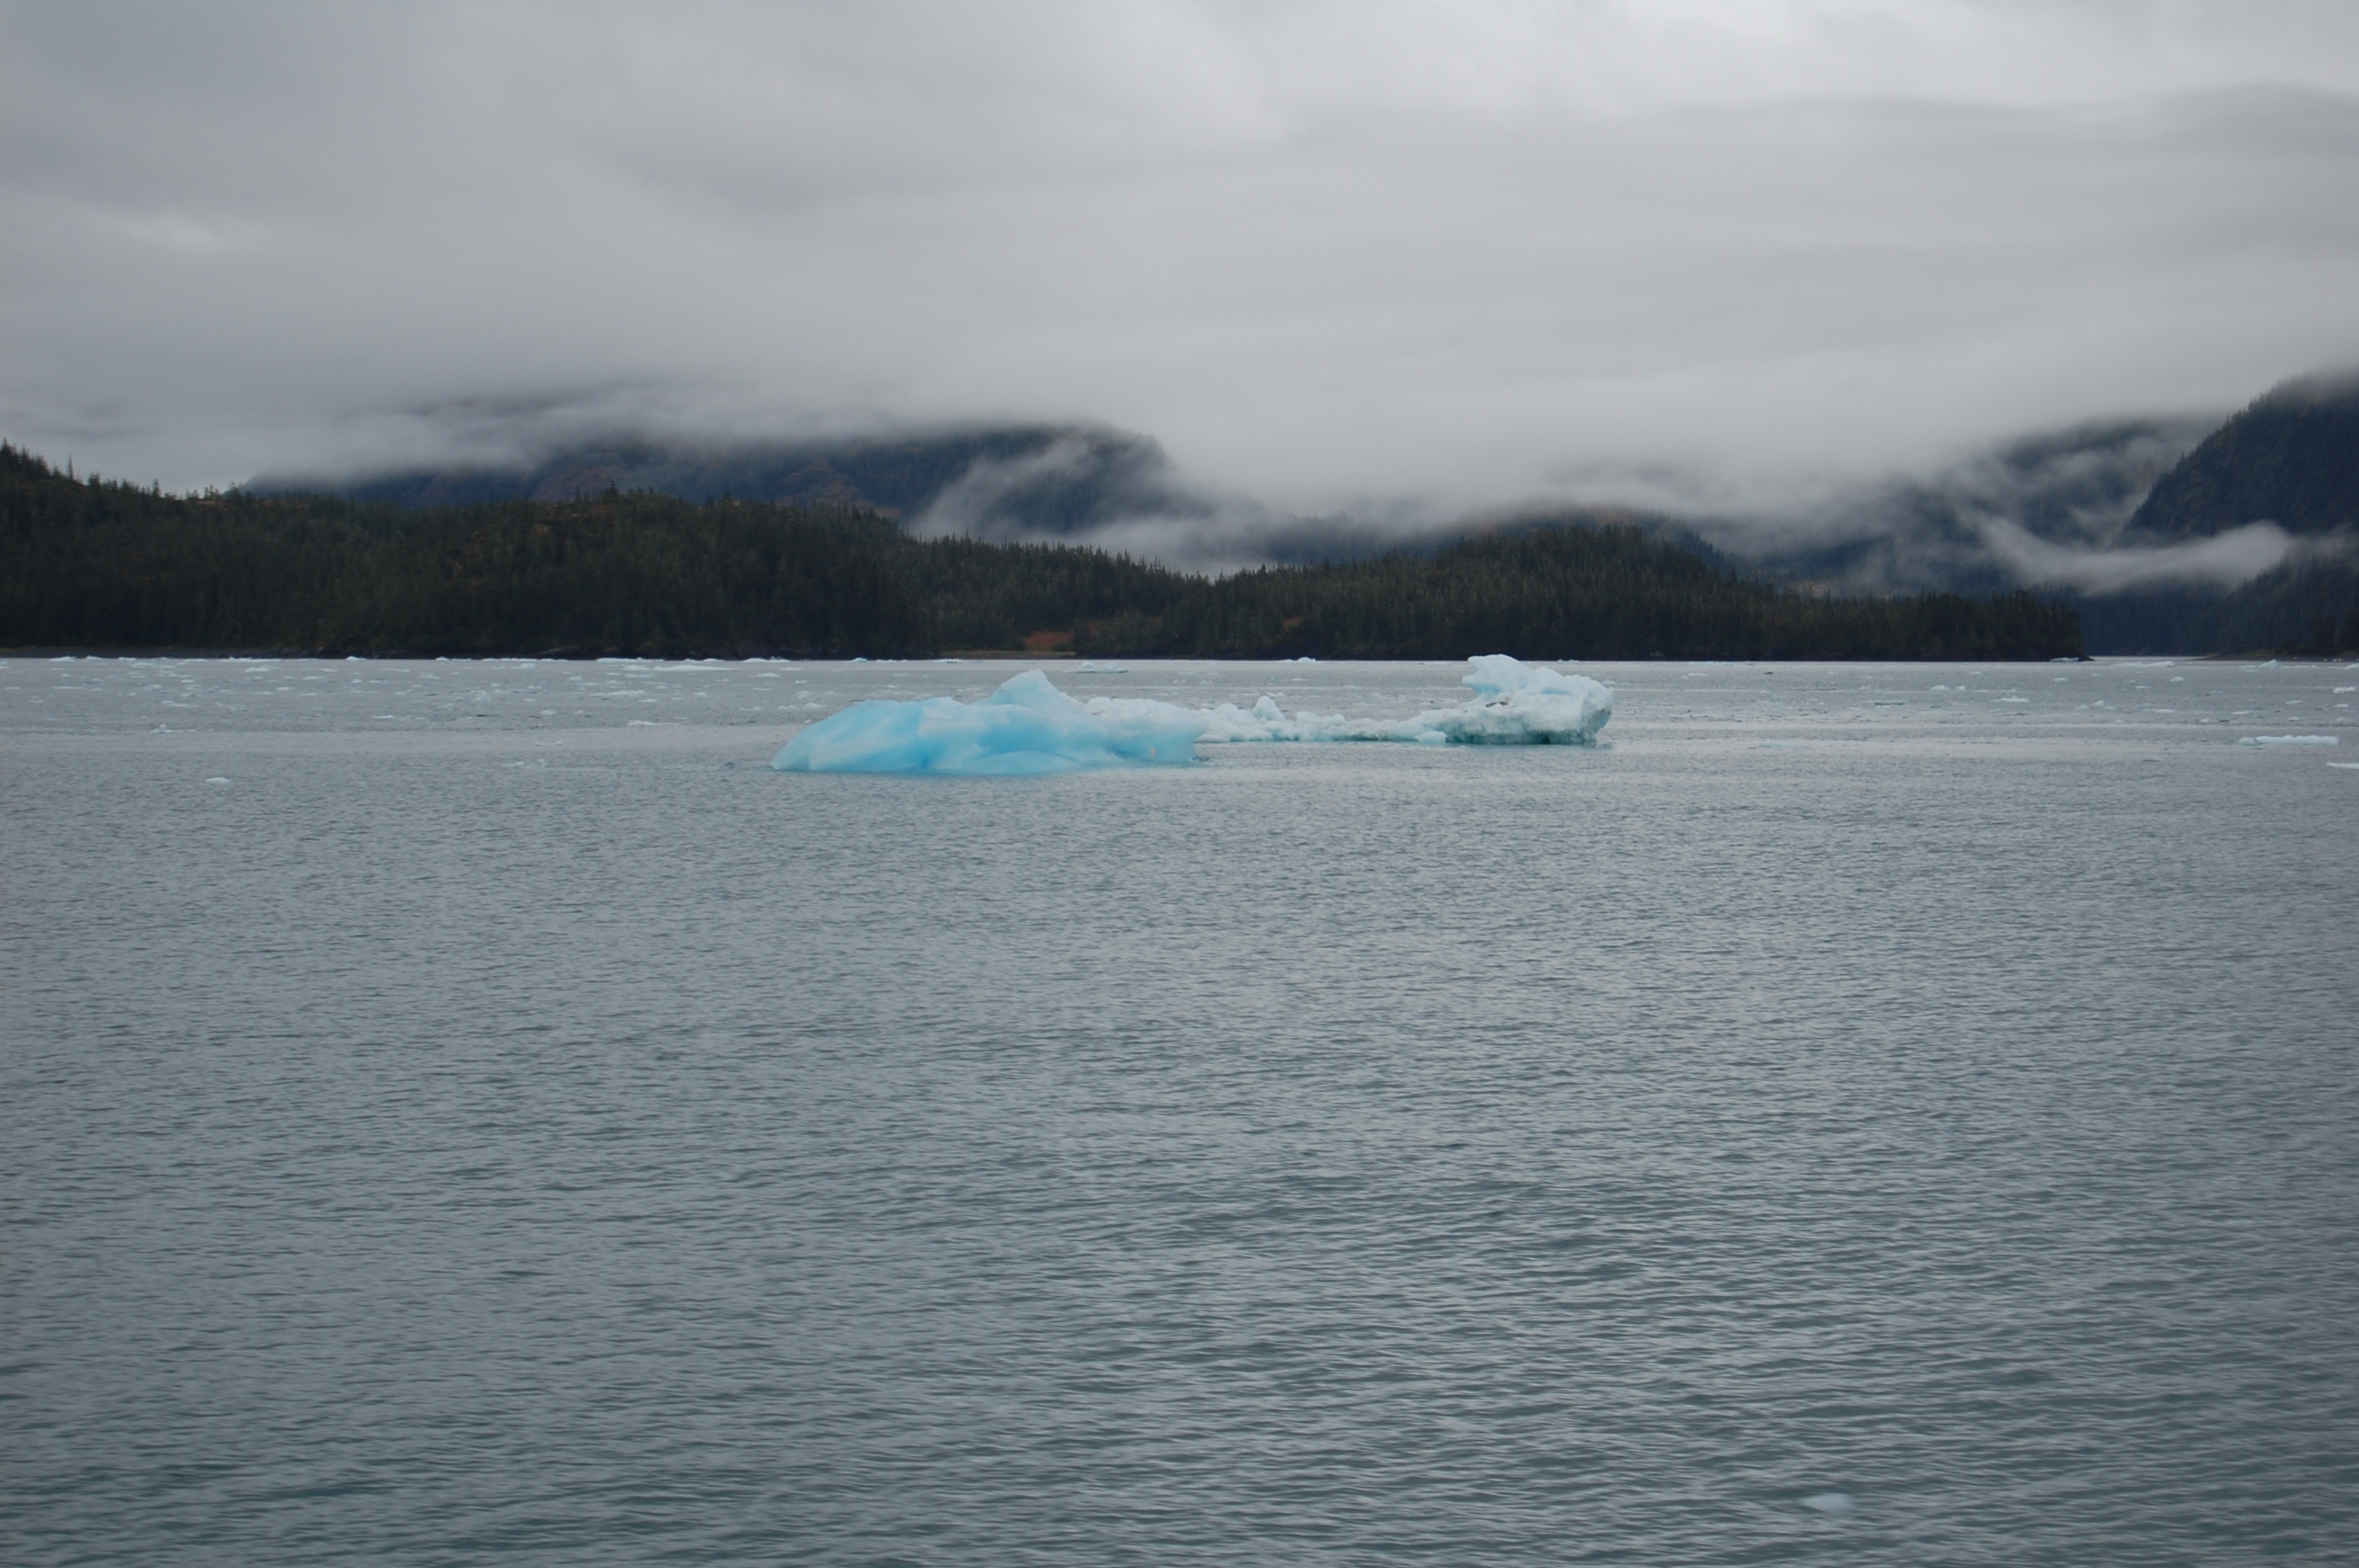 Icebergs calved by the Columbia Glacier